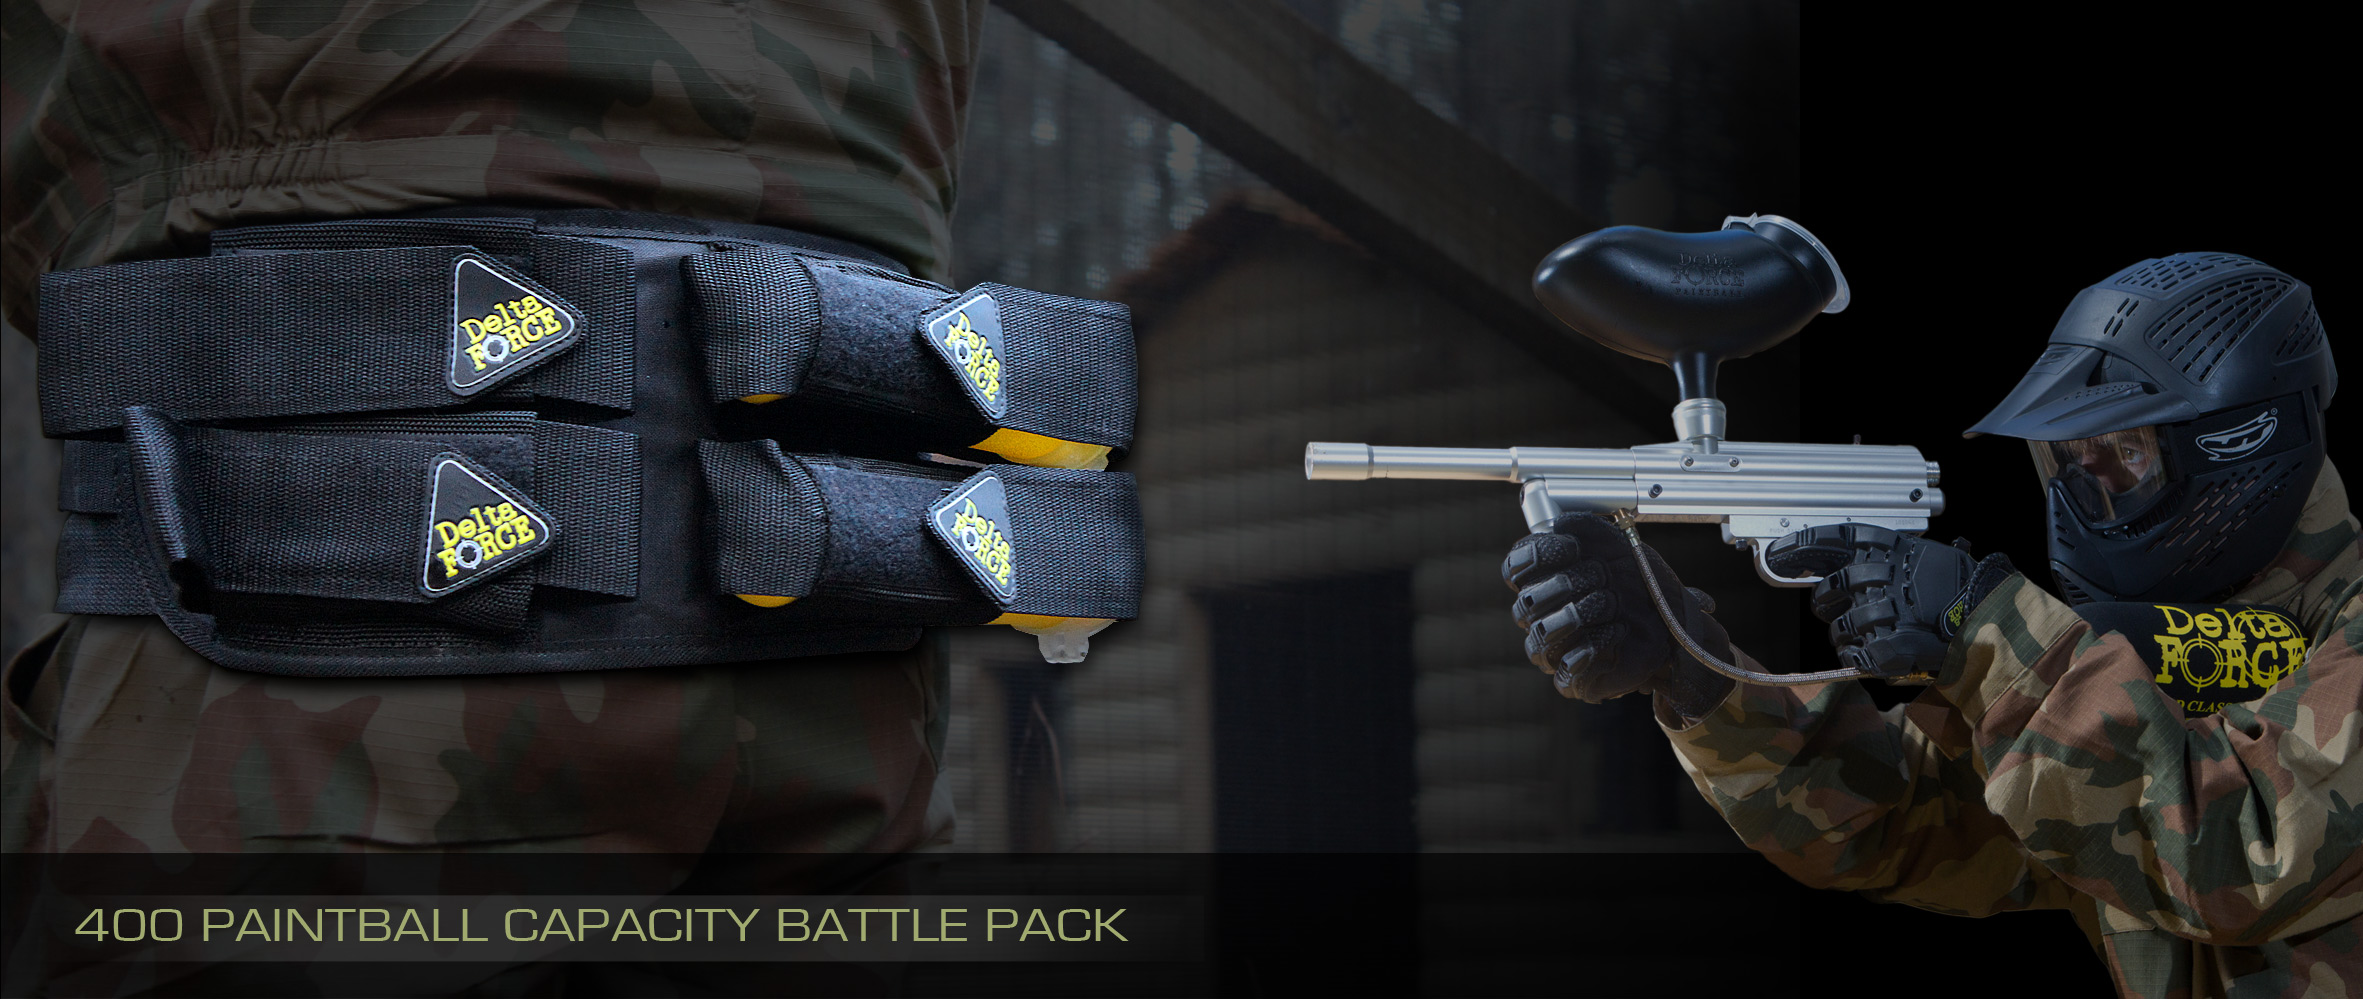 Delta Force Paintball Battle Pack